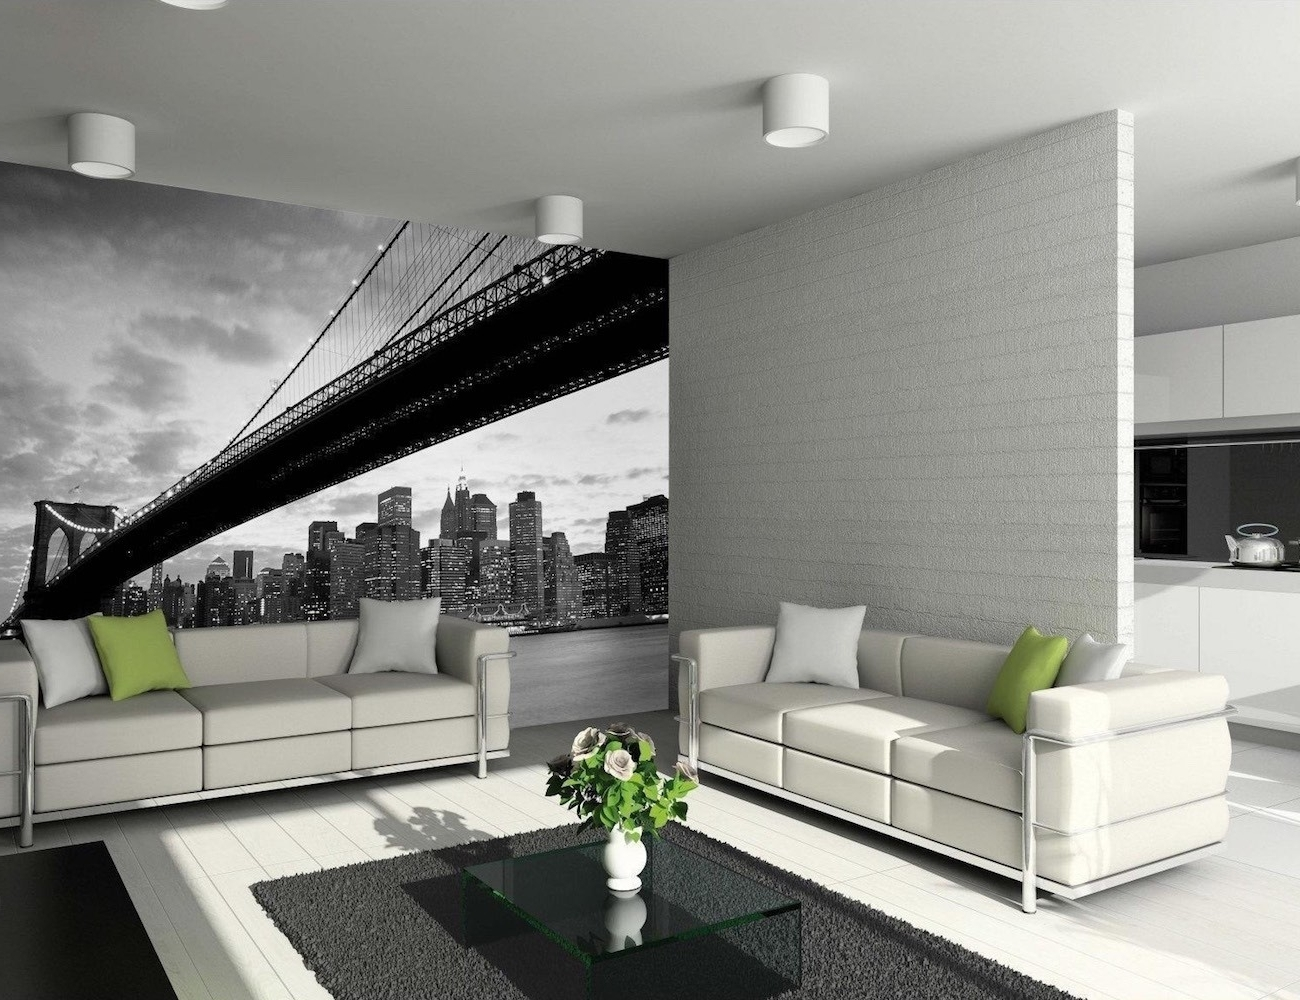 Widely Used Brooklyn Bridge Wall Mural1Wall » Gadget Flow For Brooklyn Bridge Wall Decals (View 15 of 15)